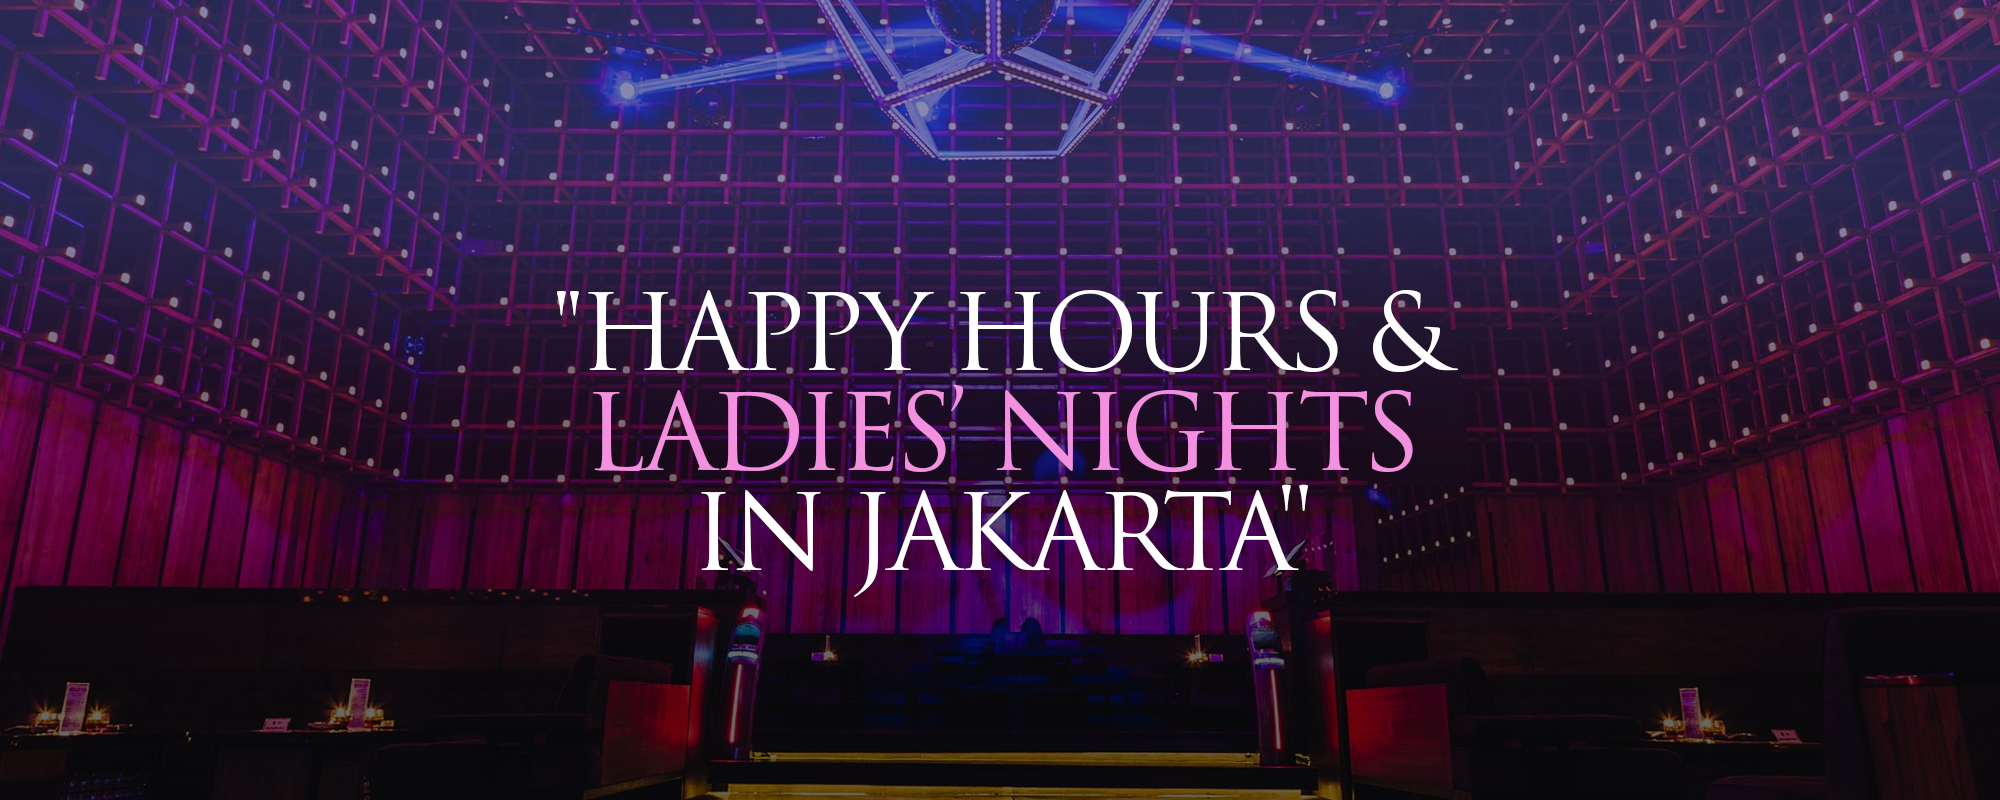 Happy Hours & Ladies' Nights in Jakarta